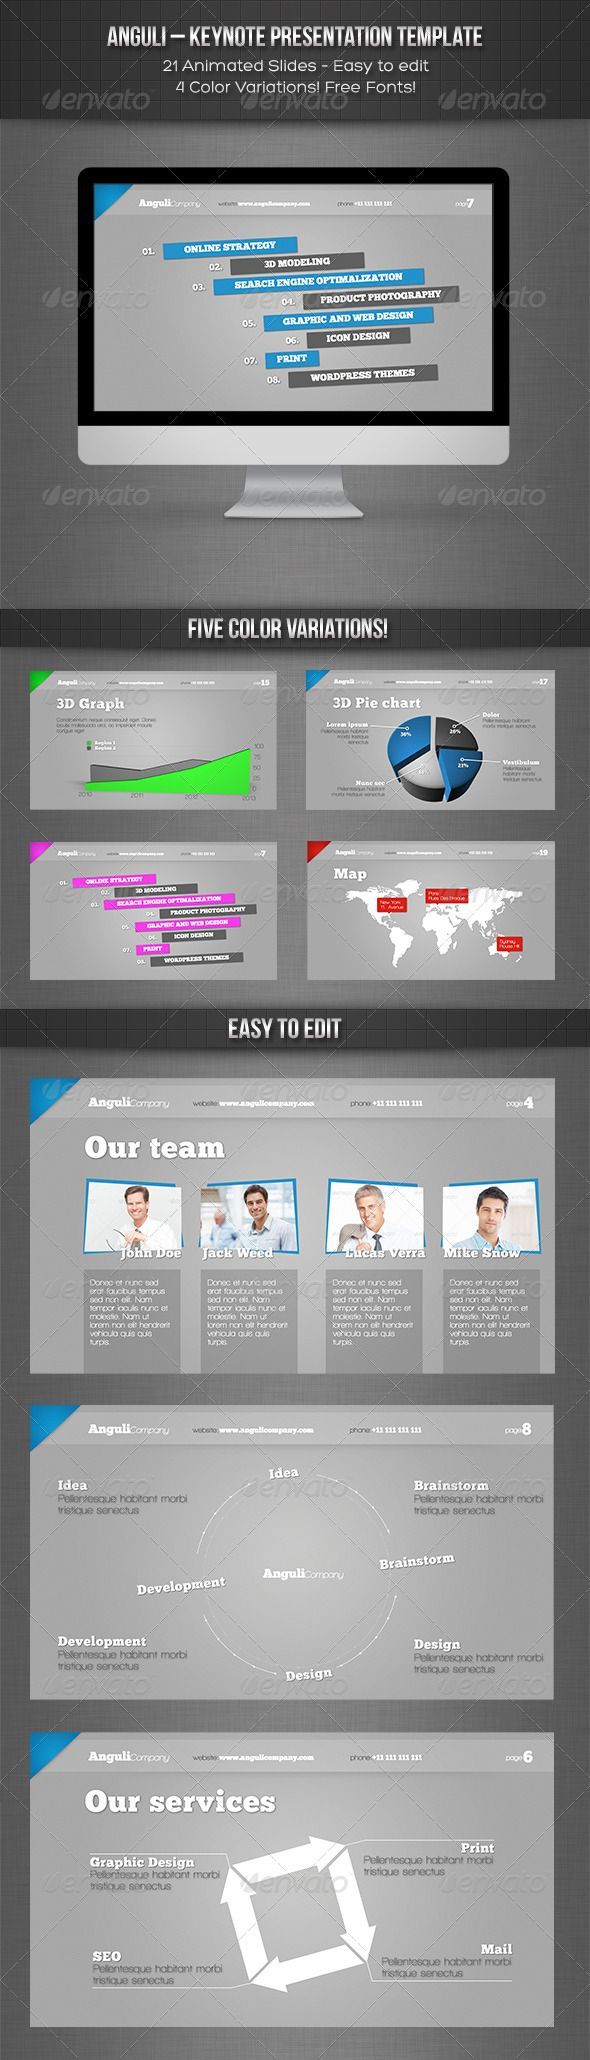 53 best ppt template images on pinterest visual communication buy anguli keynote presentation template by janstyblo on graphicrivery files psd files with backgrounds full hd toneelgroepblik Images